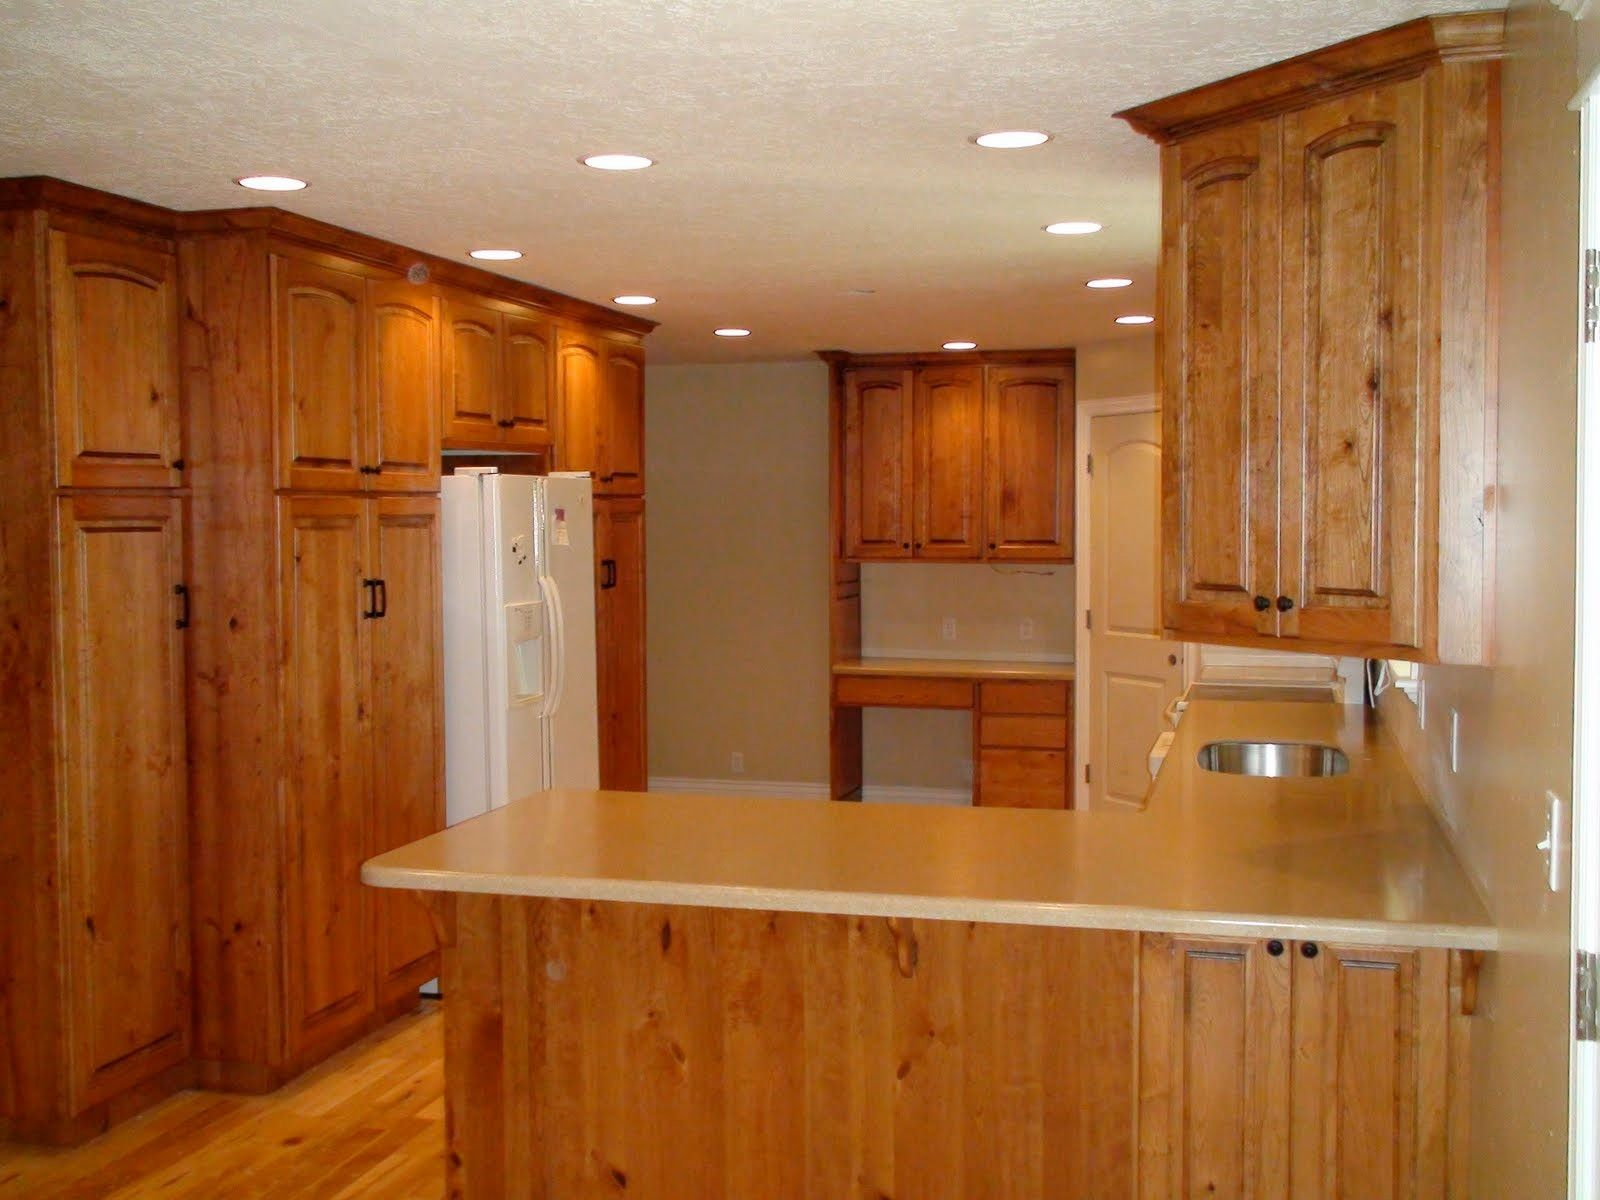 55 Knotty Oak Kitchen Cabinets Kitchen Decorating Ideas Themes Check More At Http Www Planetgre Rustic Cherry Cabinets Oak Kitchen Cabinets Kitchen Design